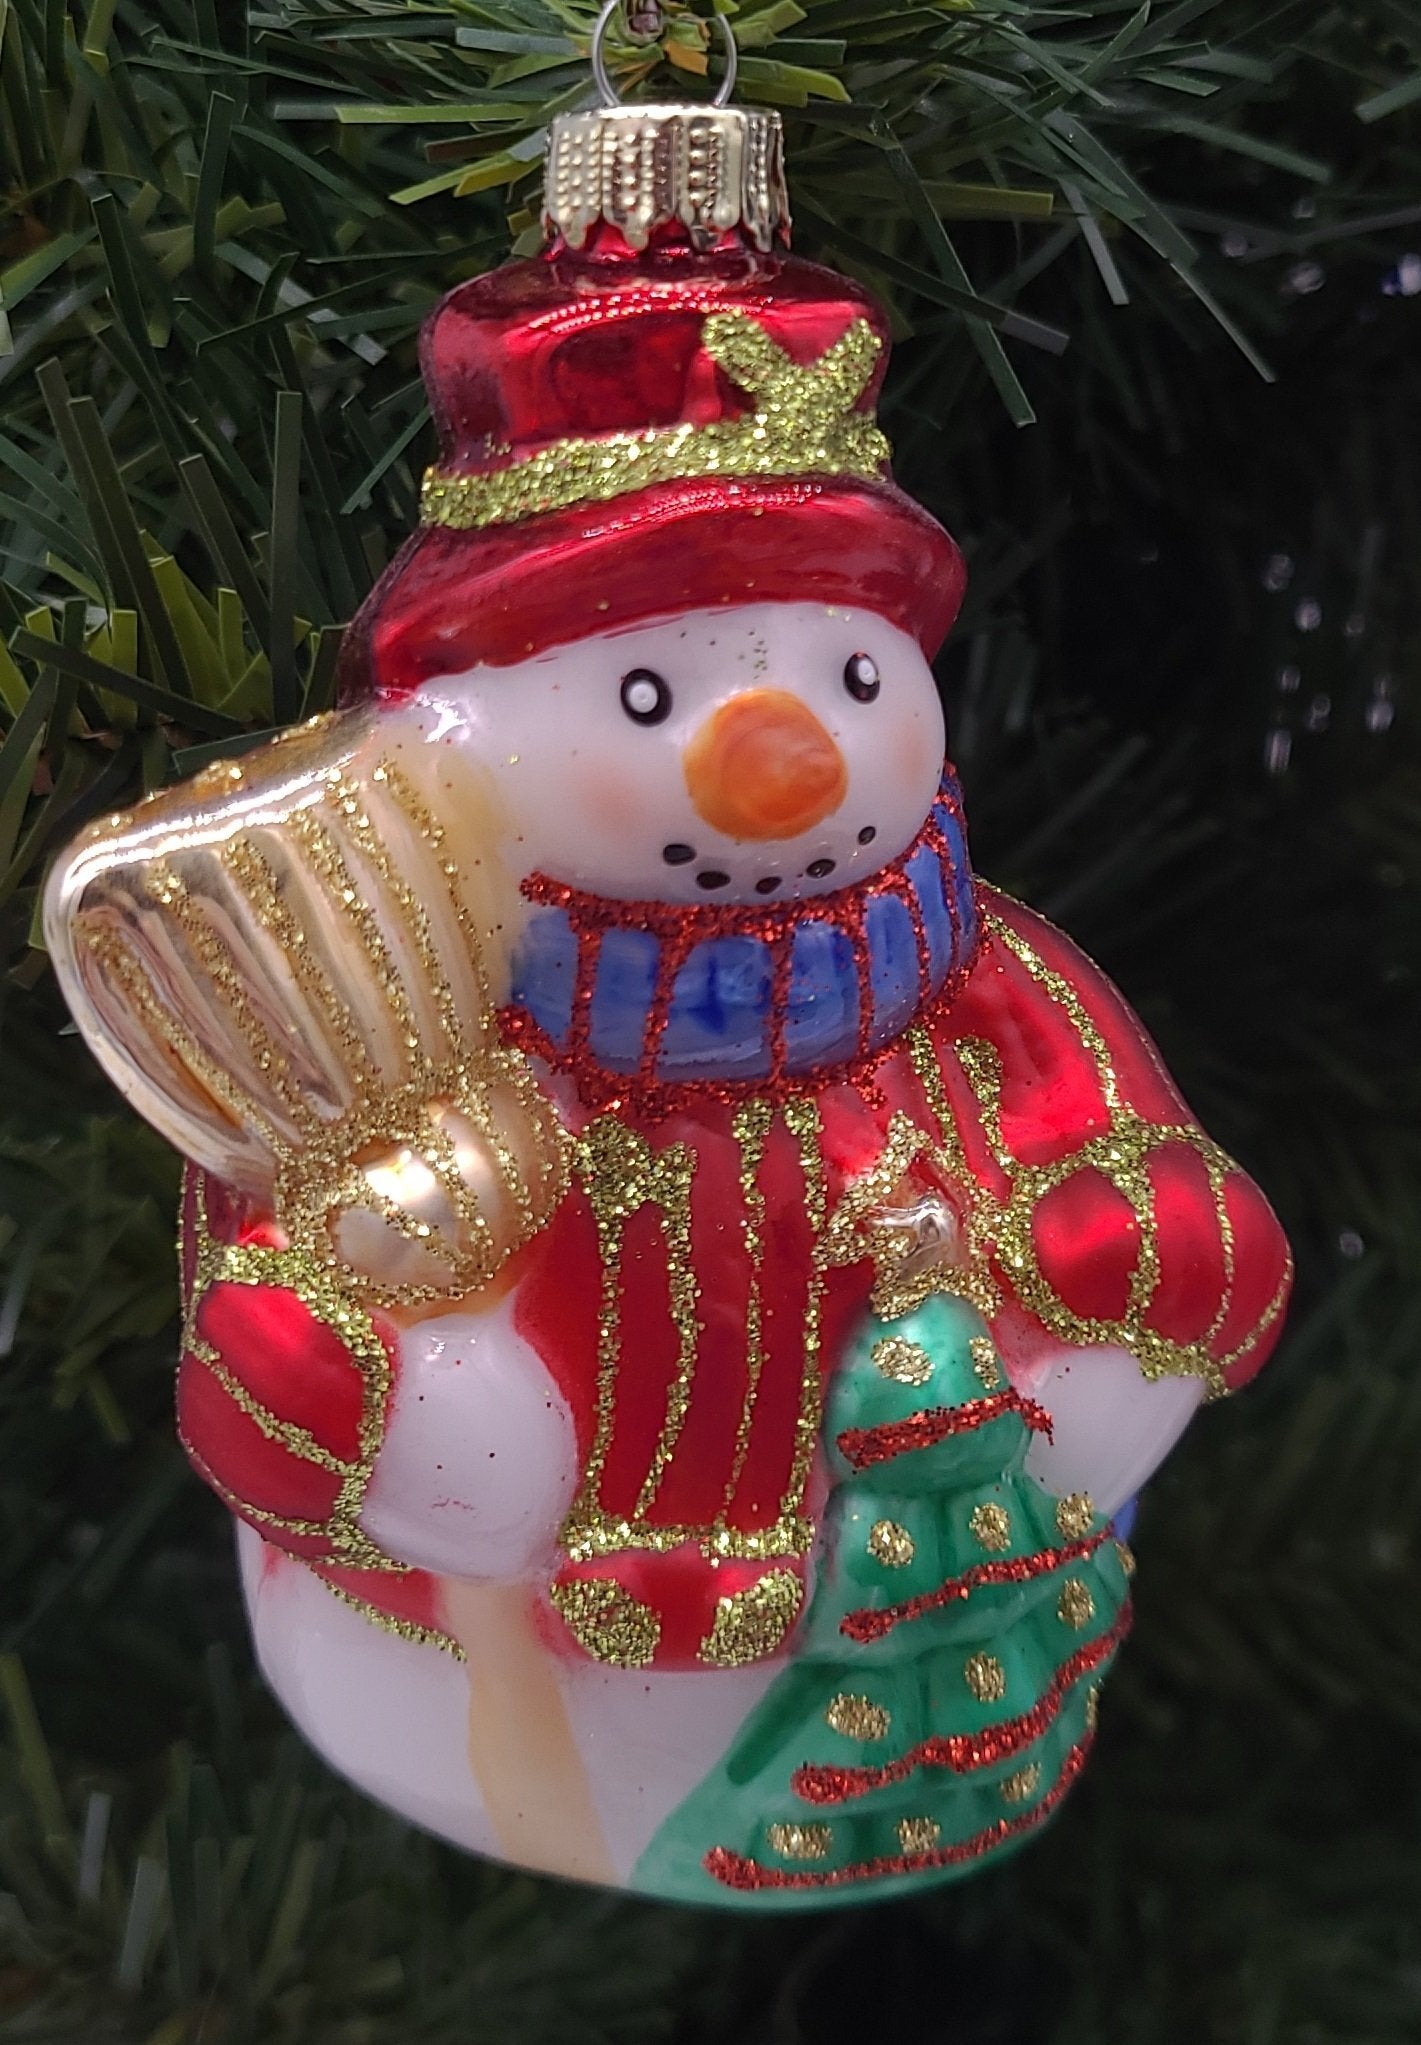 Snowman with Tree Glass Ornament - Schmidt Christmas Market Christmas Decoration